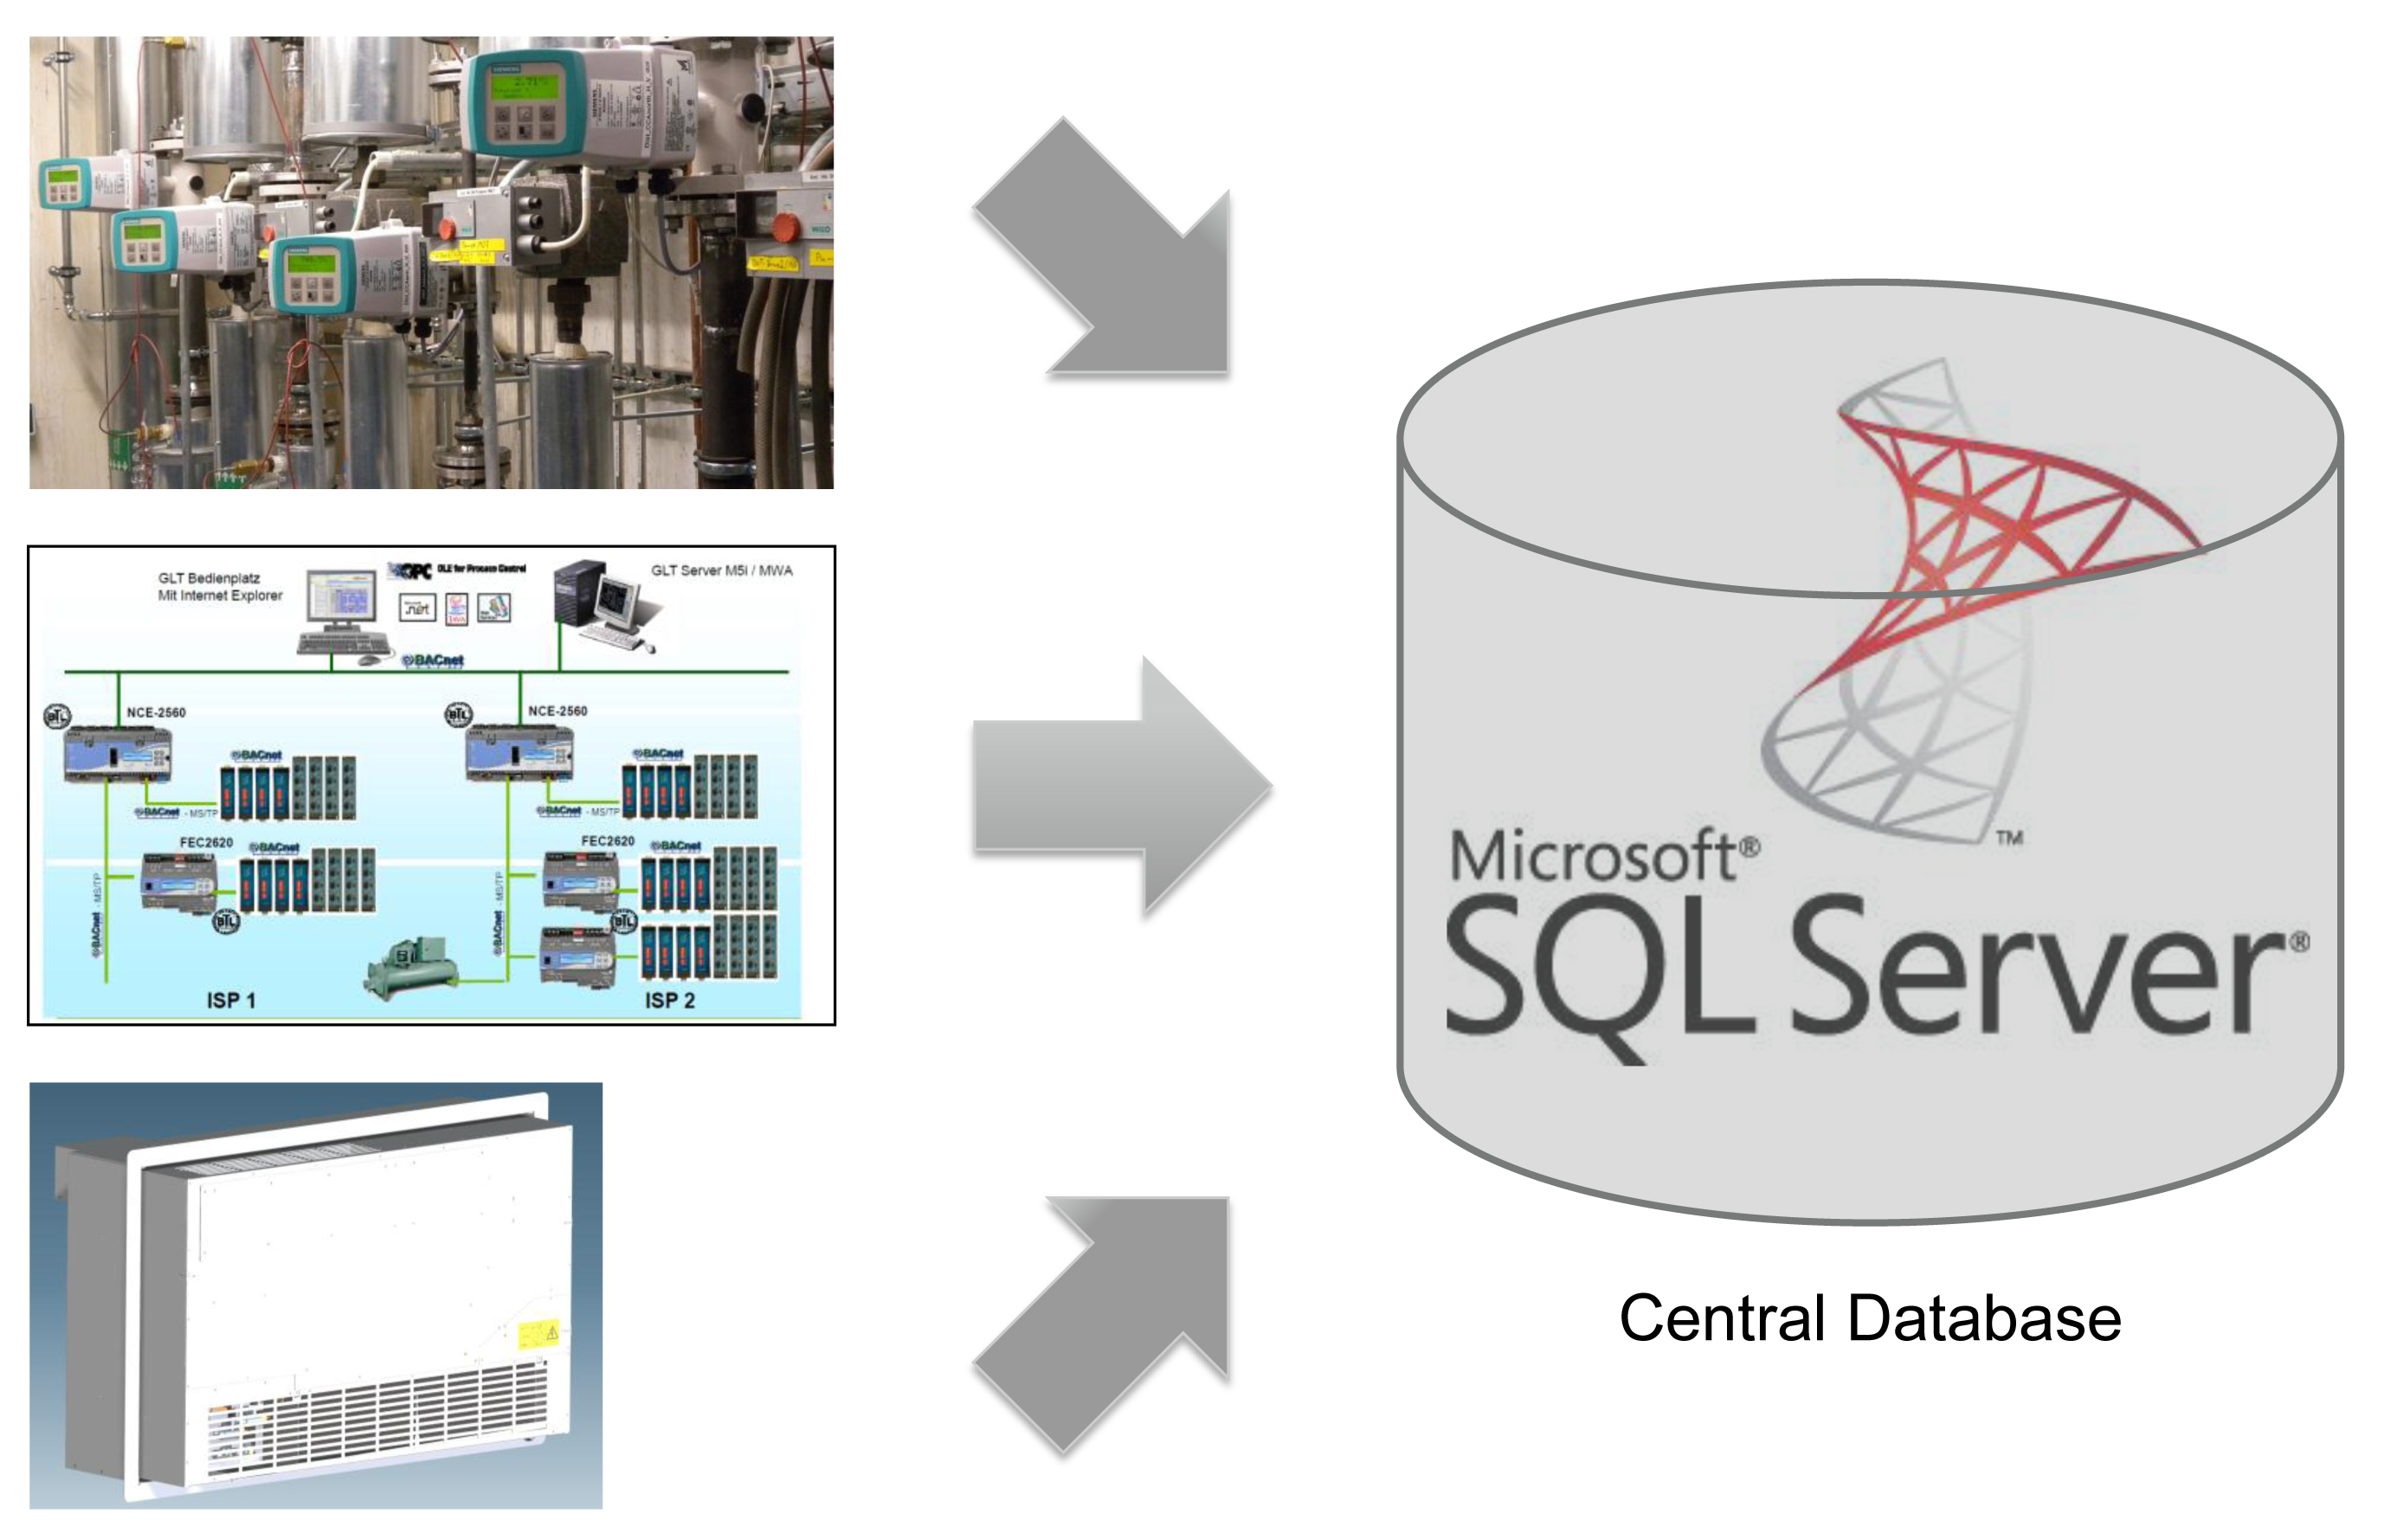 Schematic structure of database